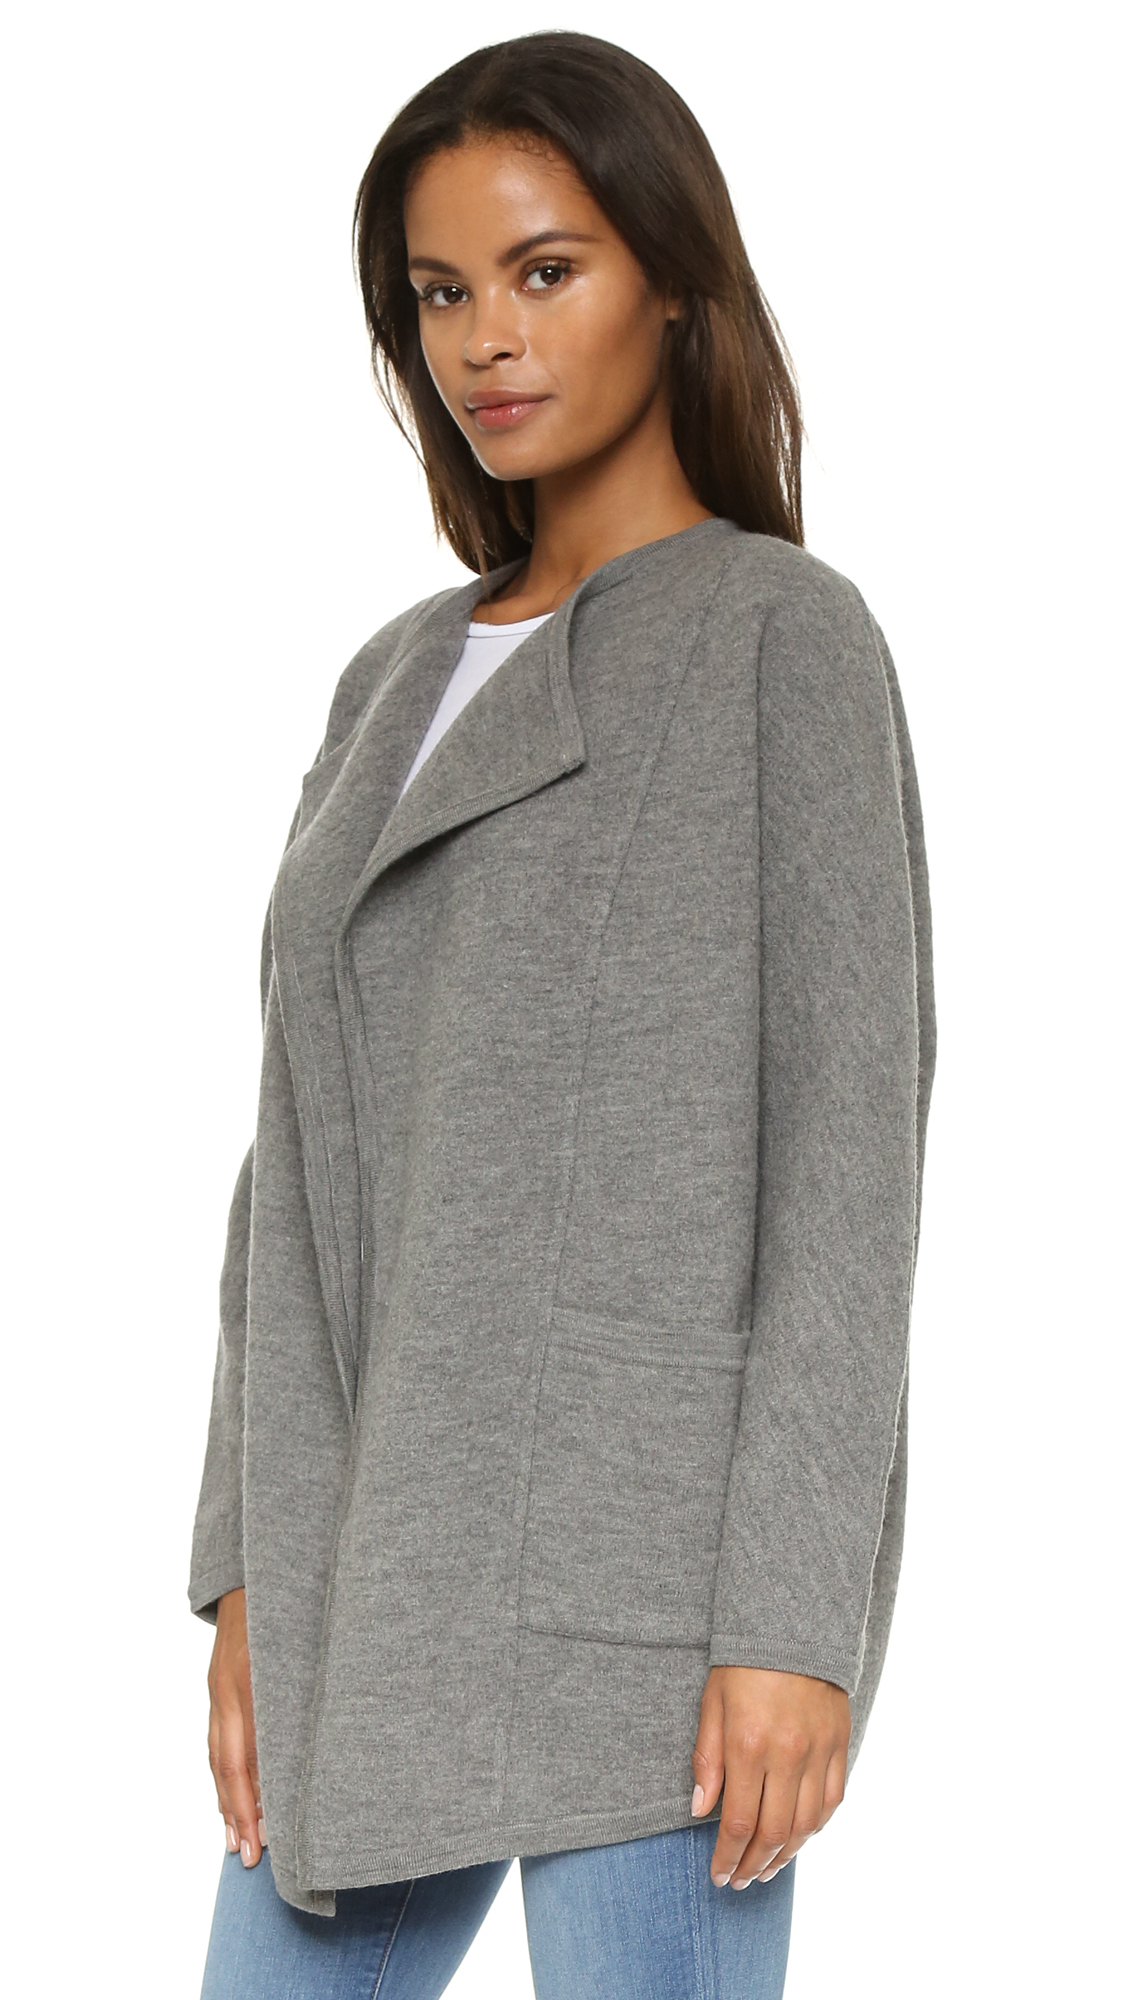 Madewell Sweater Coat - Heather Grey in Gray | Lyst